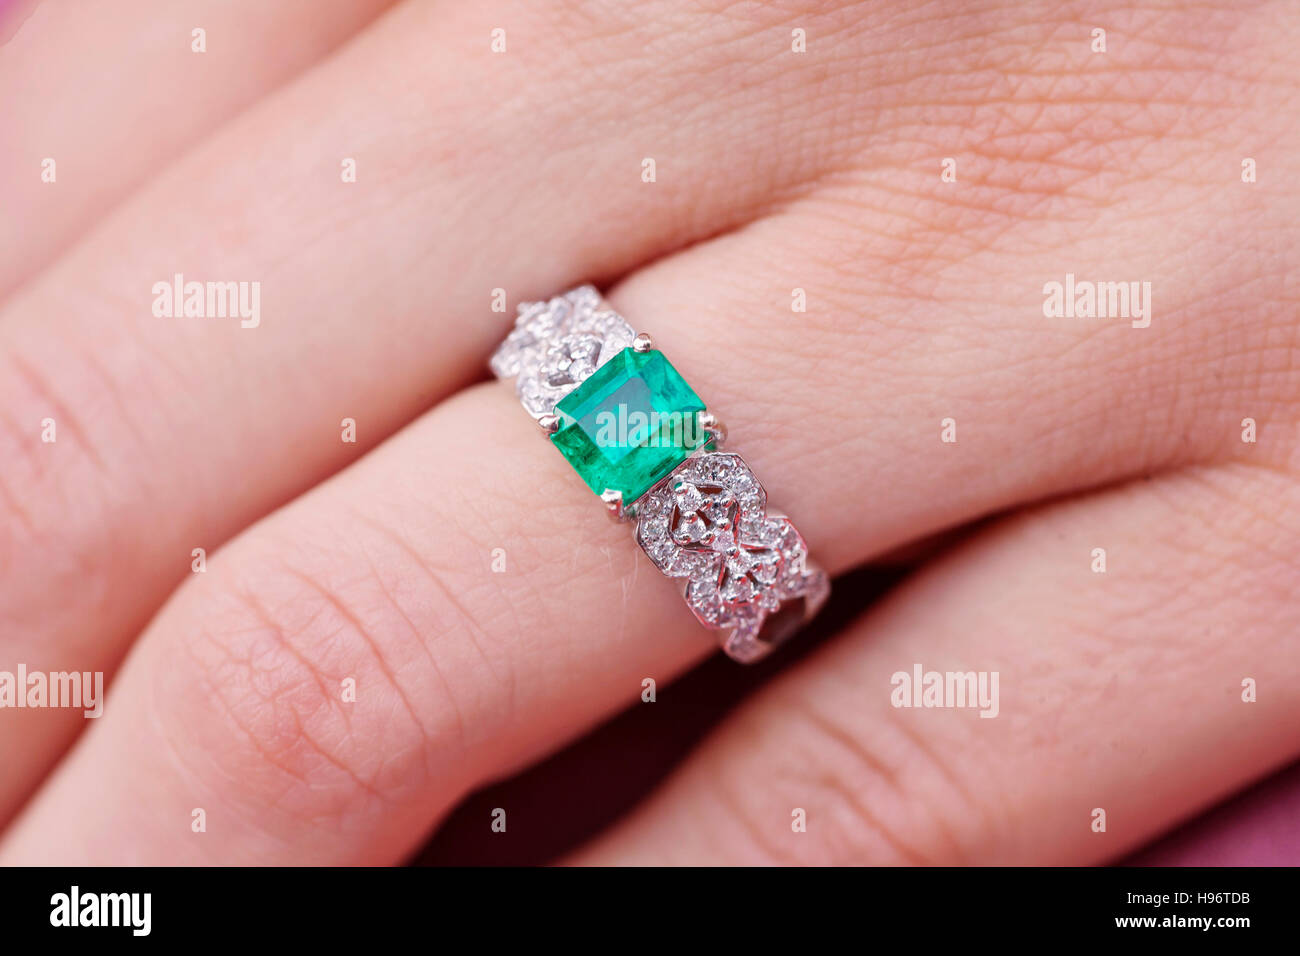 Emerald Ring Stock Photos & Emerald Ring Stock Images - Alamy